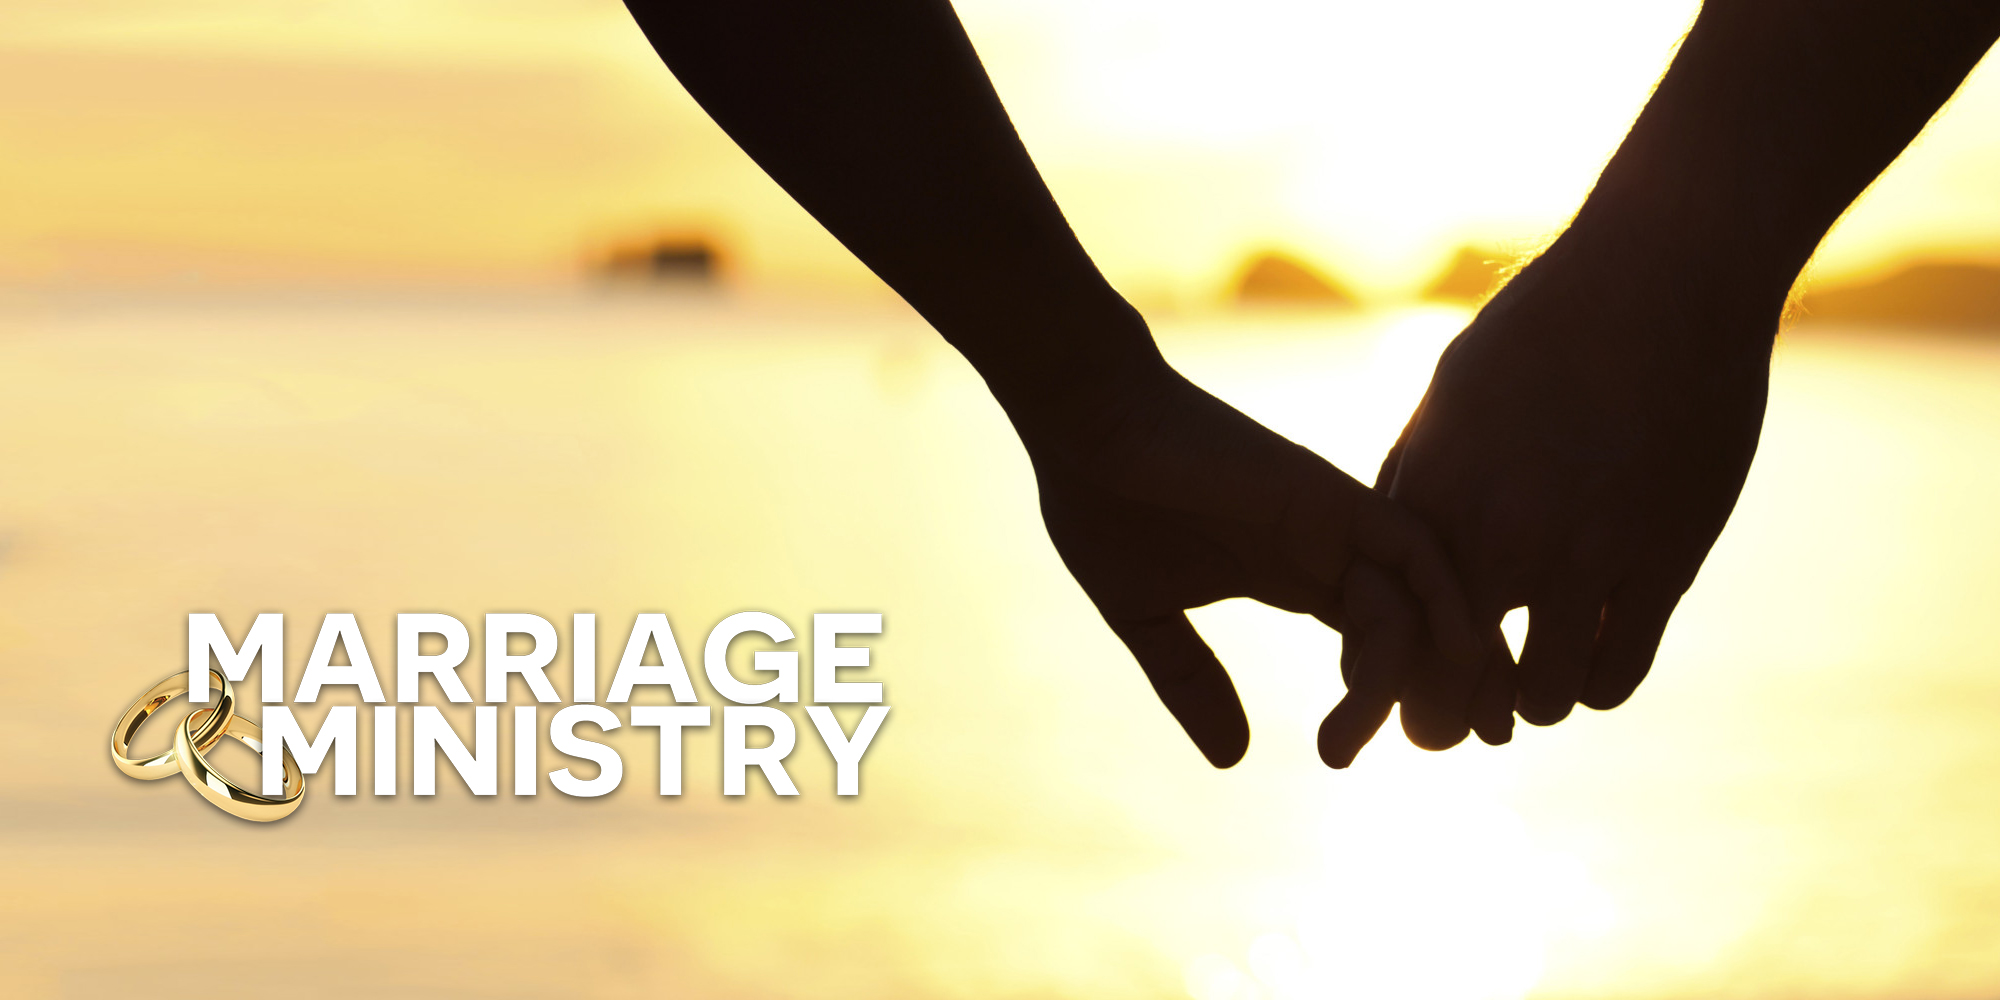 Marriage Ministry header.jpg